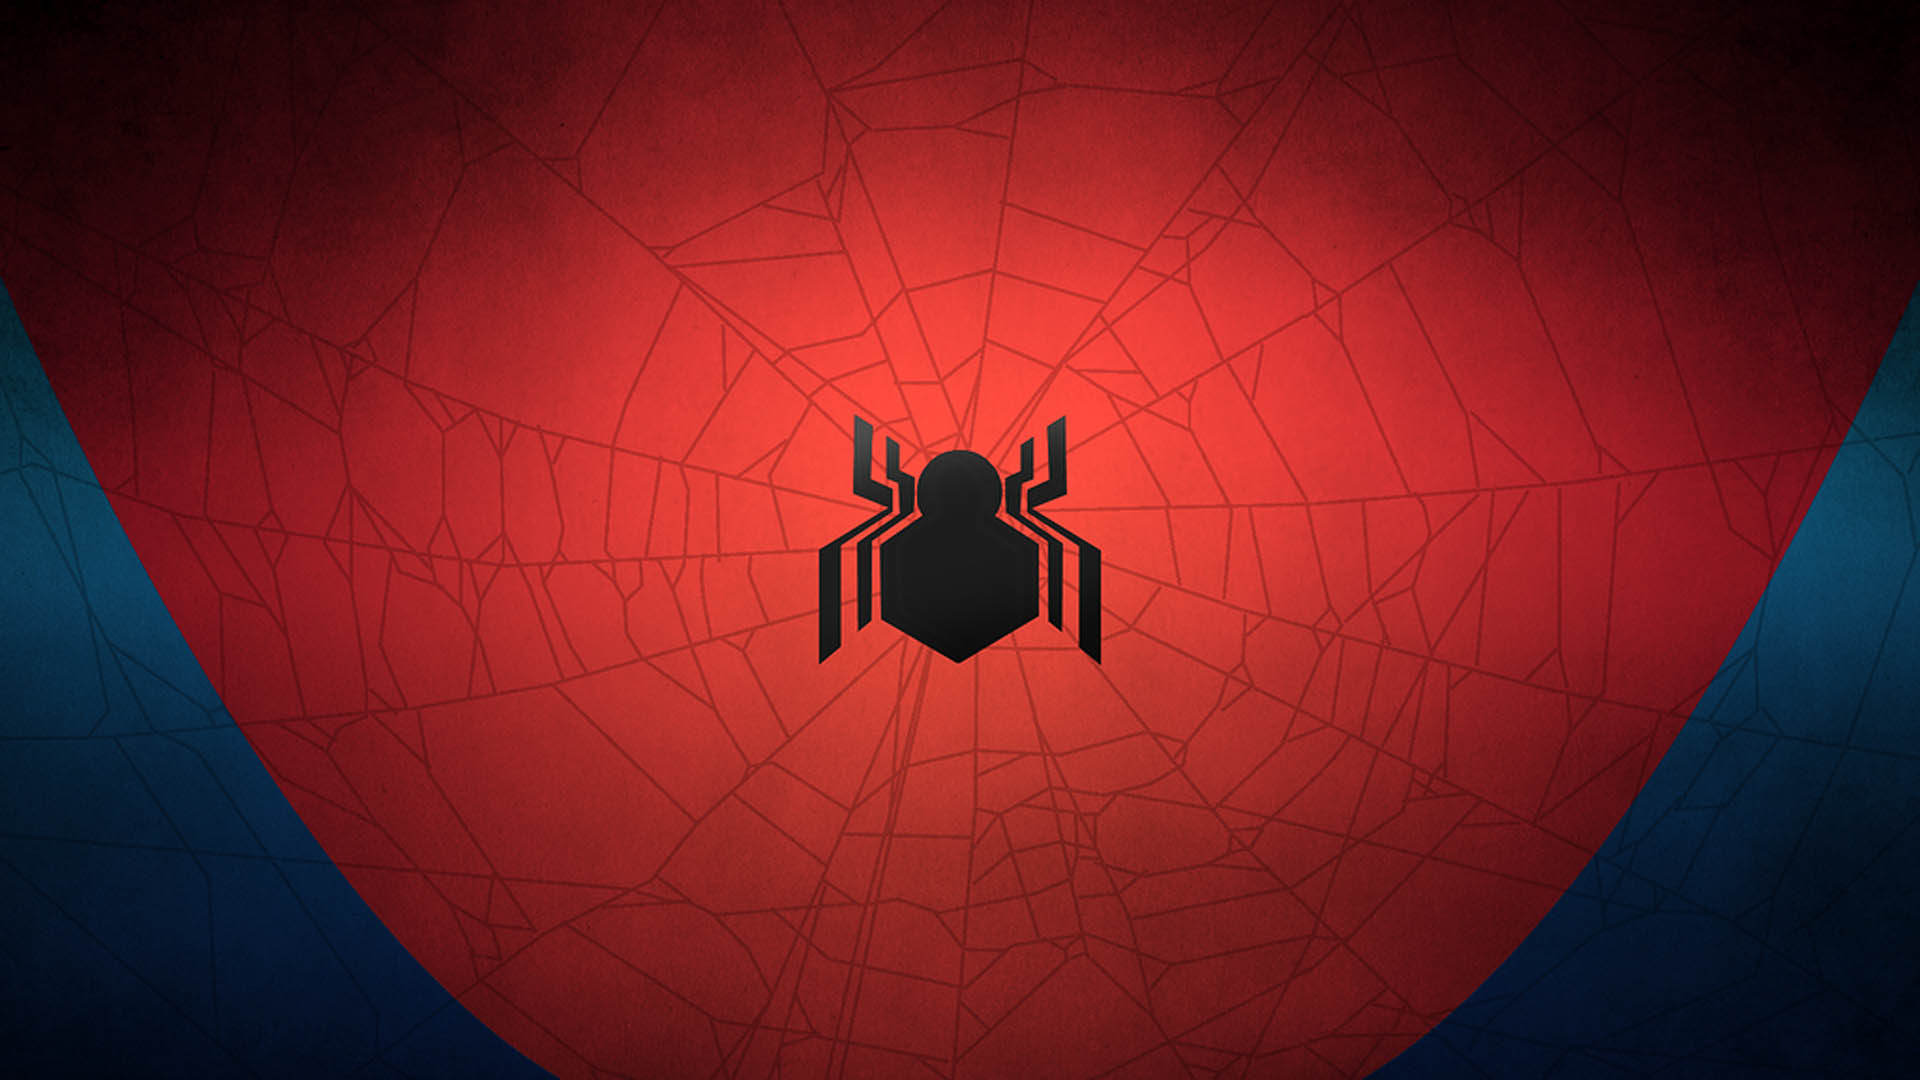 spider man logo wallpapers 183��